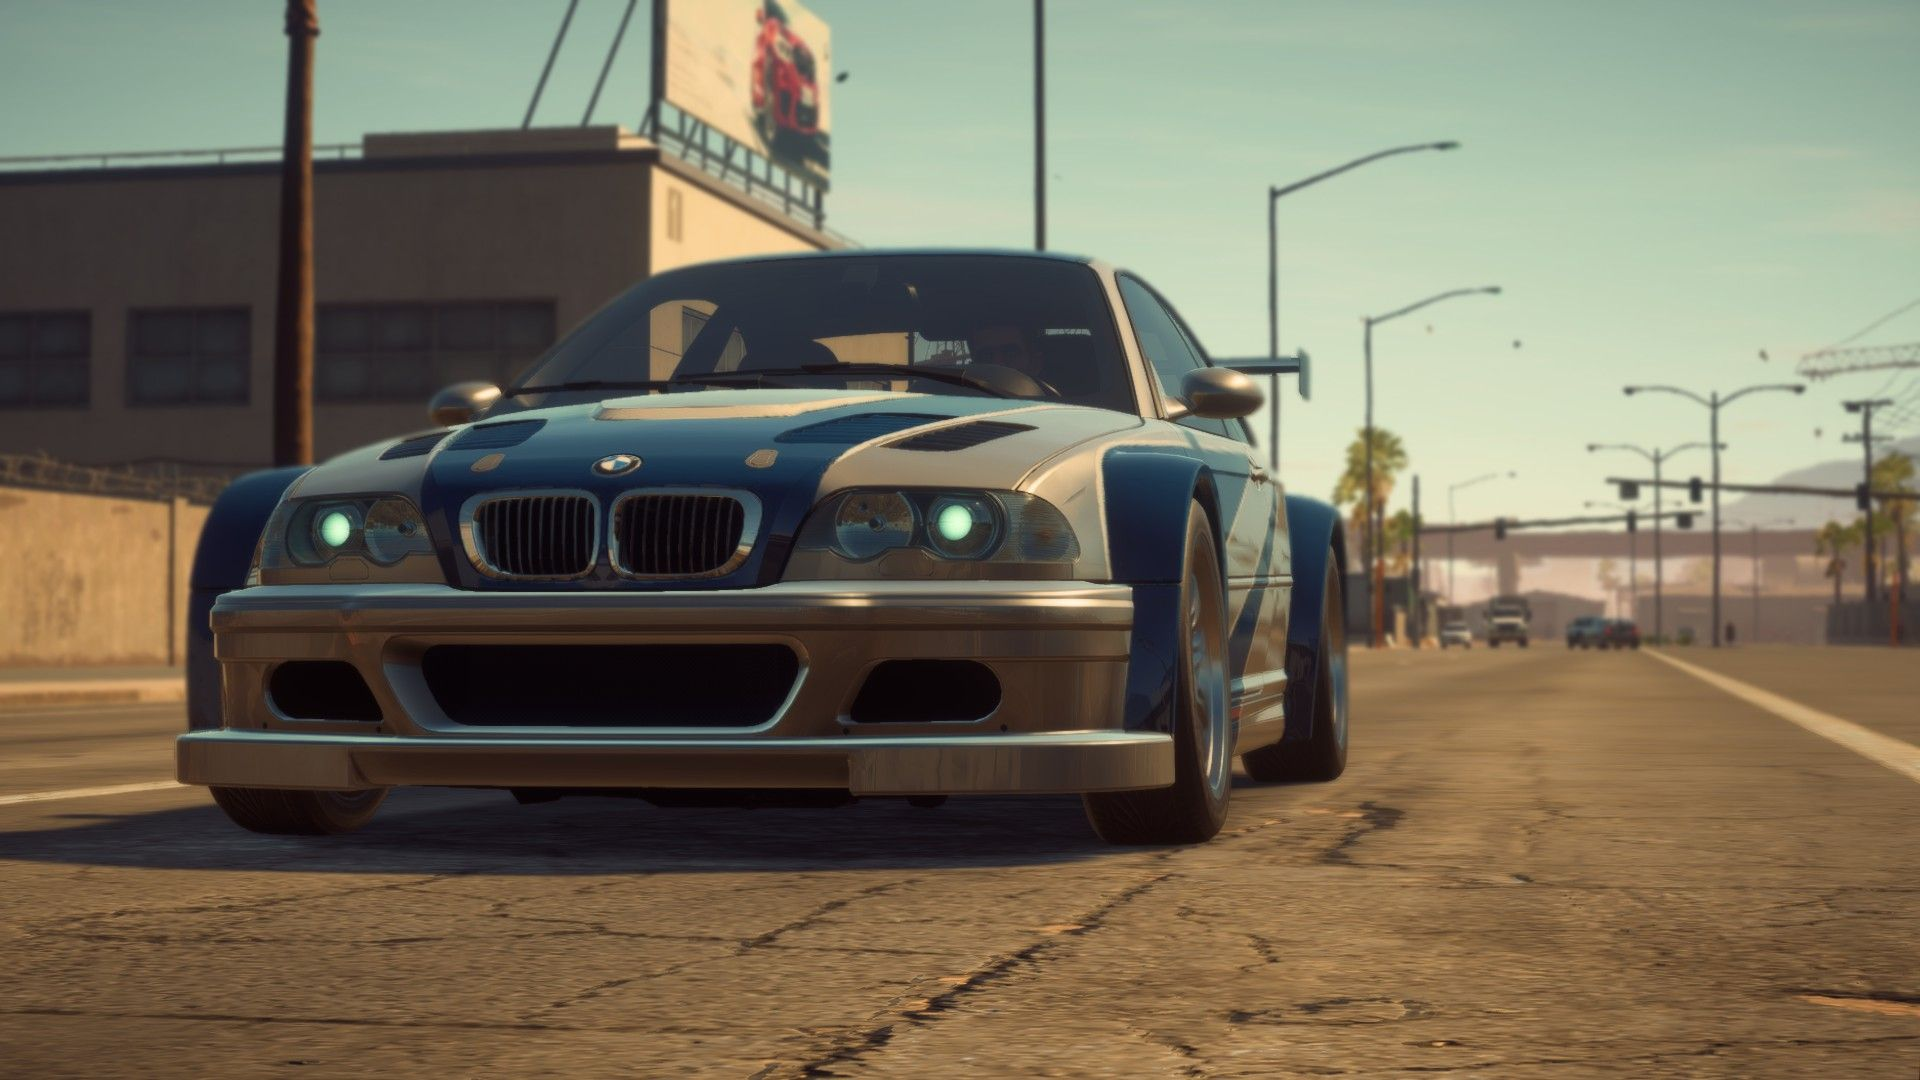 The Players Bmw M3 E46 Gtr From Most Wanted 2005 1 Carros